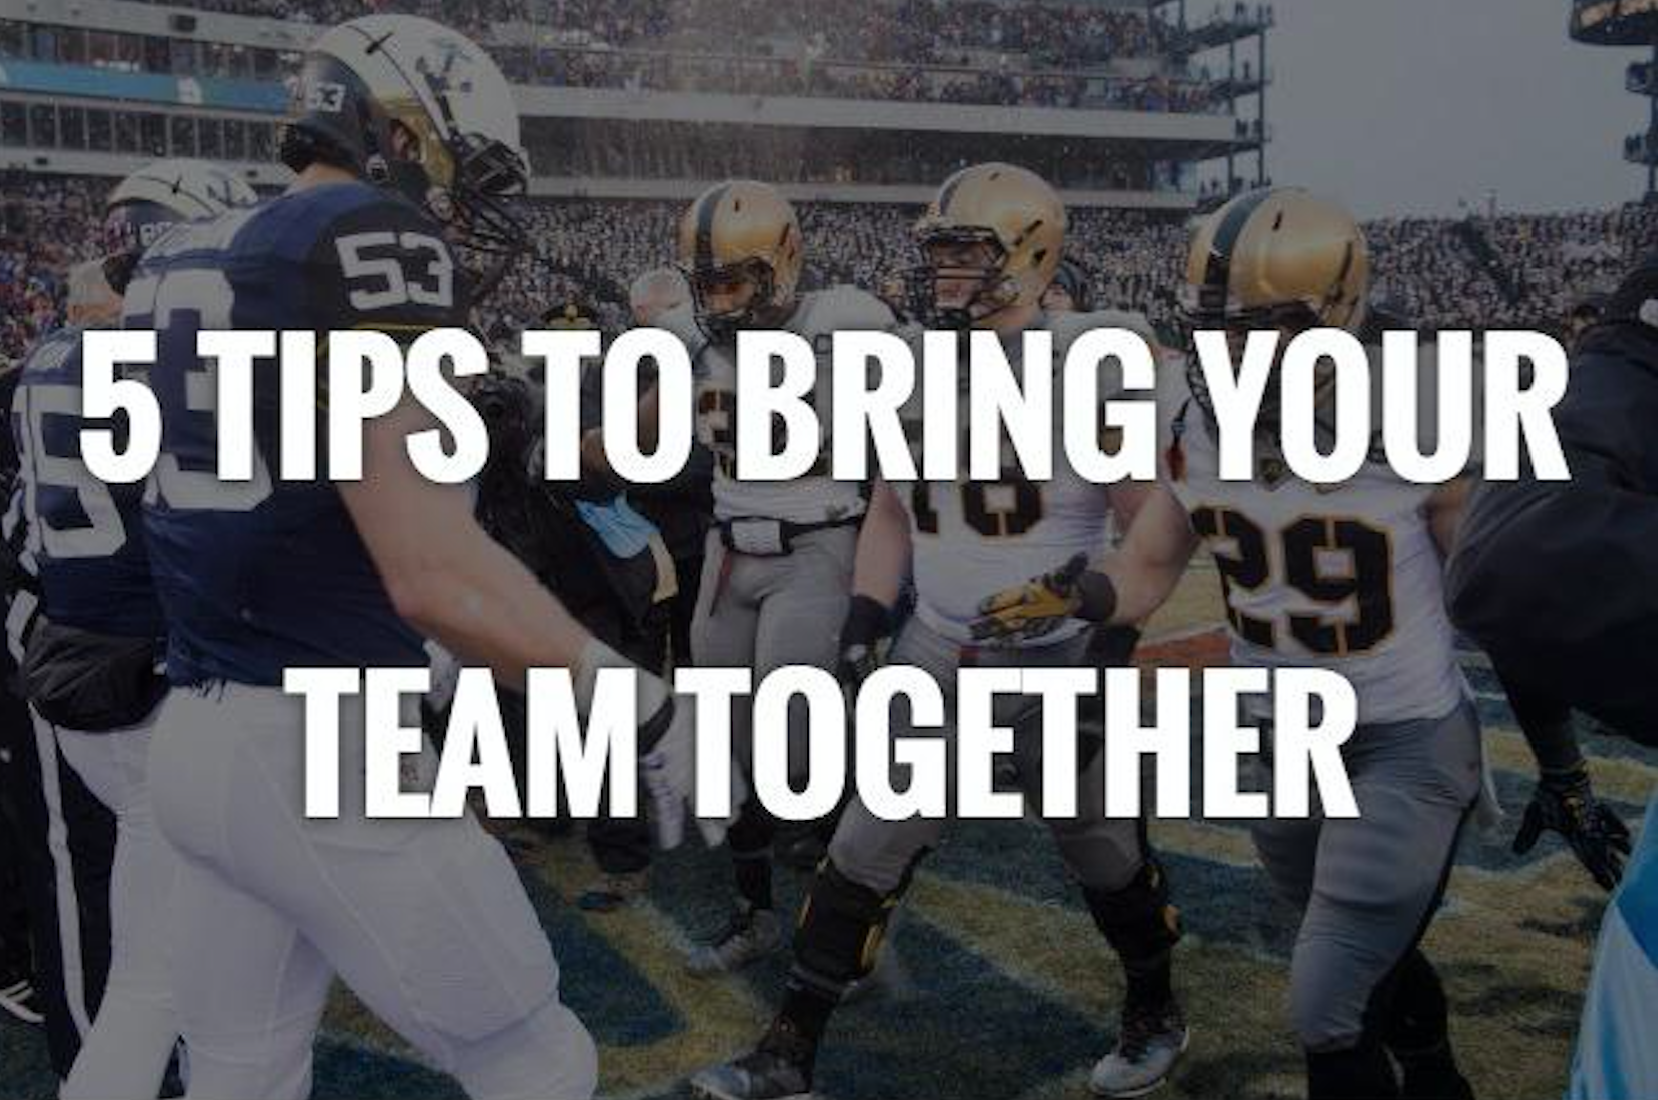 You're a captain, now what? 5 Tips to bring your team together and establish yourself as a true leader